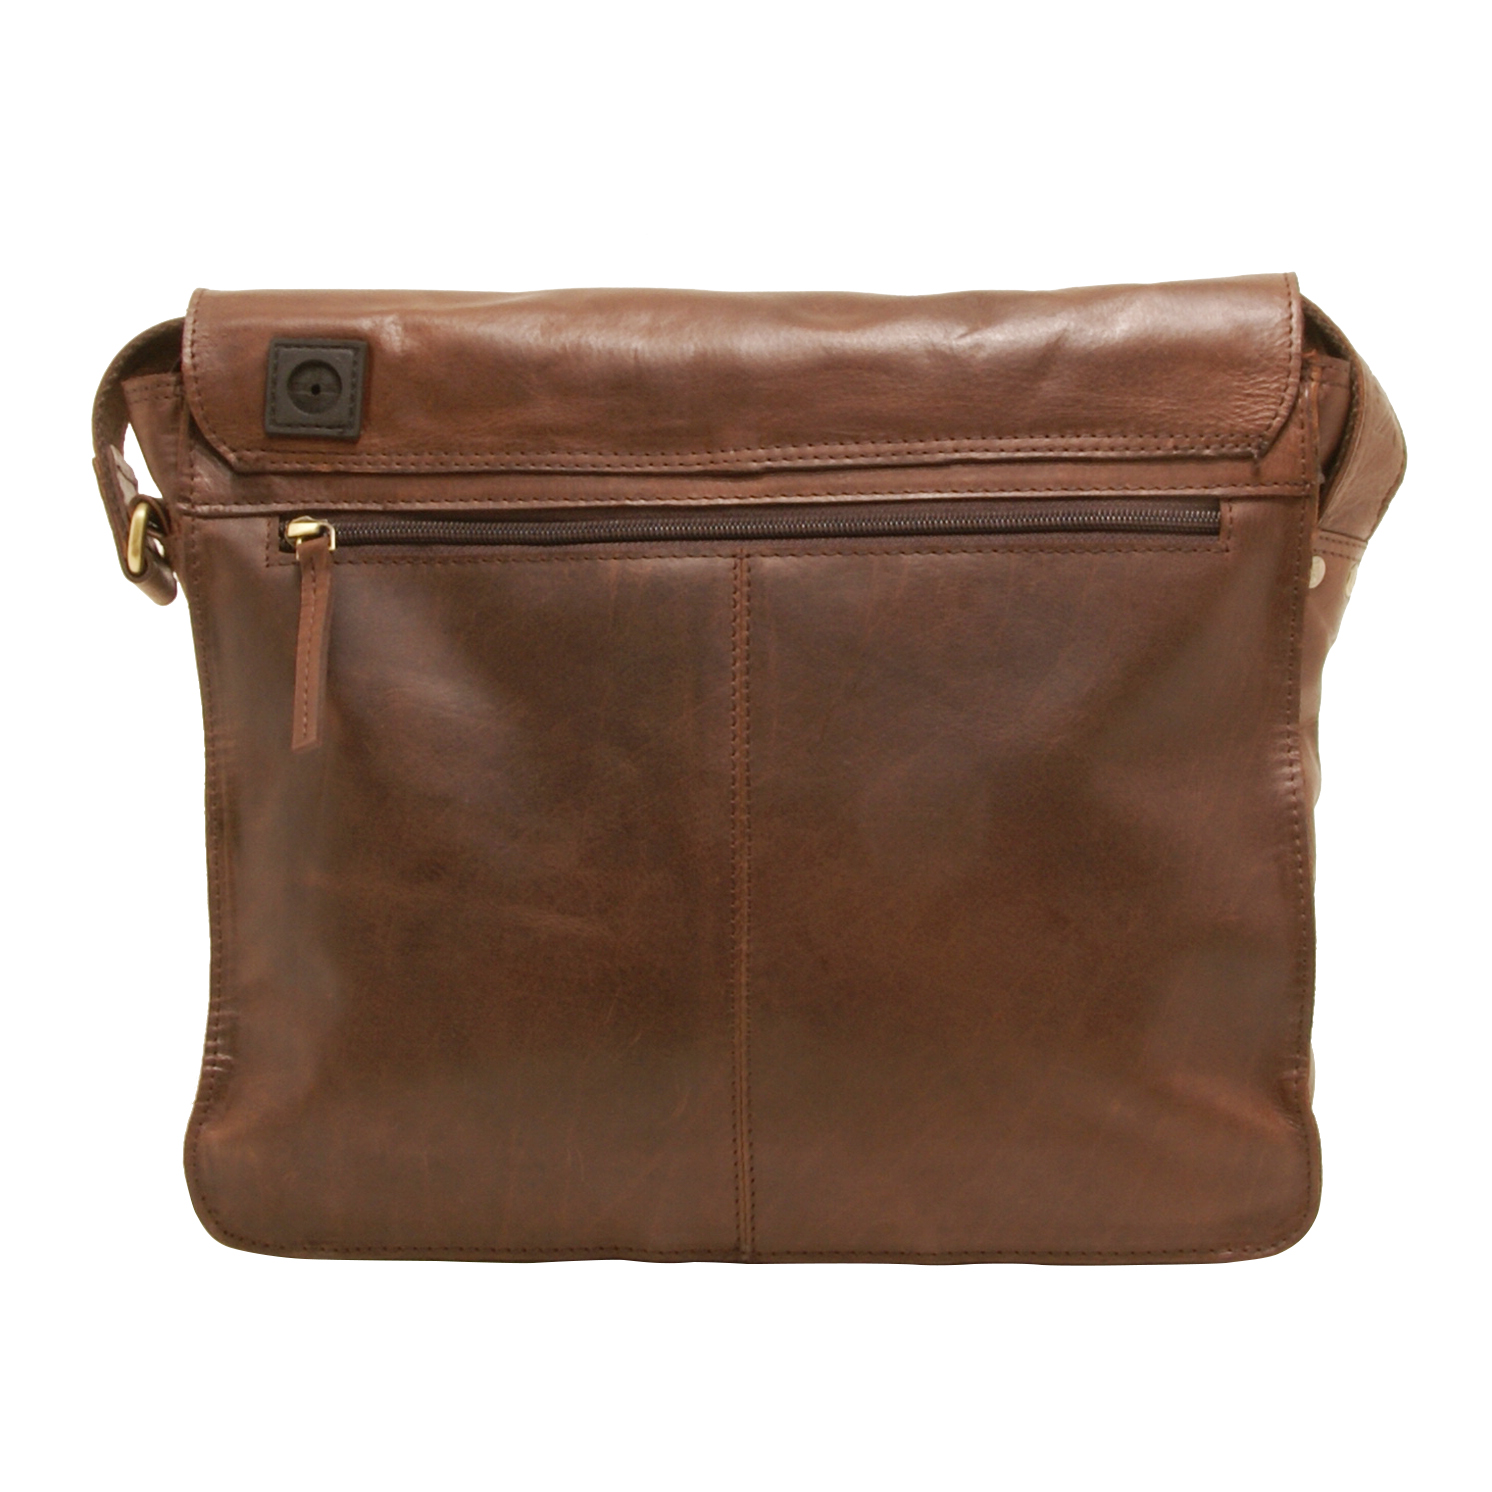 Rowallan – Brown East/West Medium Pittsburgh Messenger Bag in Buffalo Leather